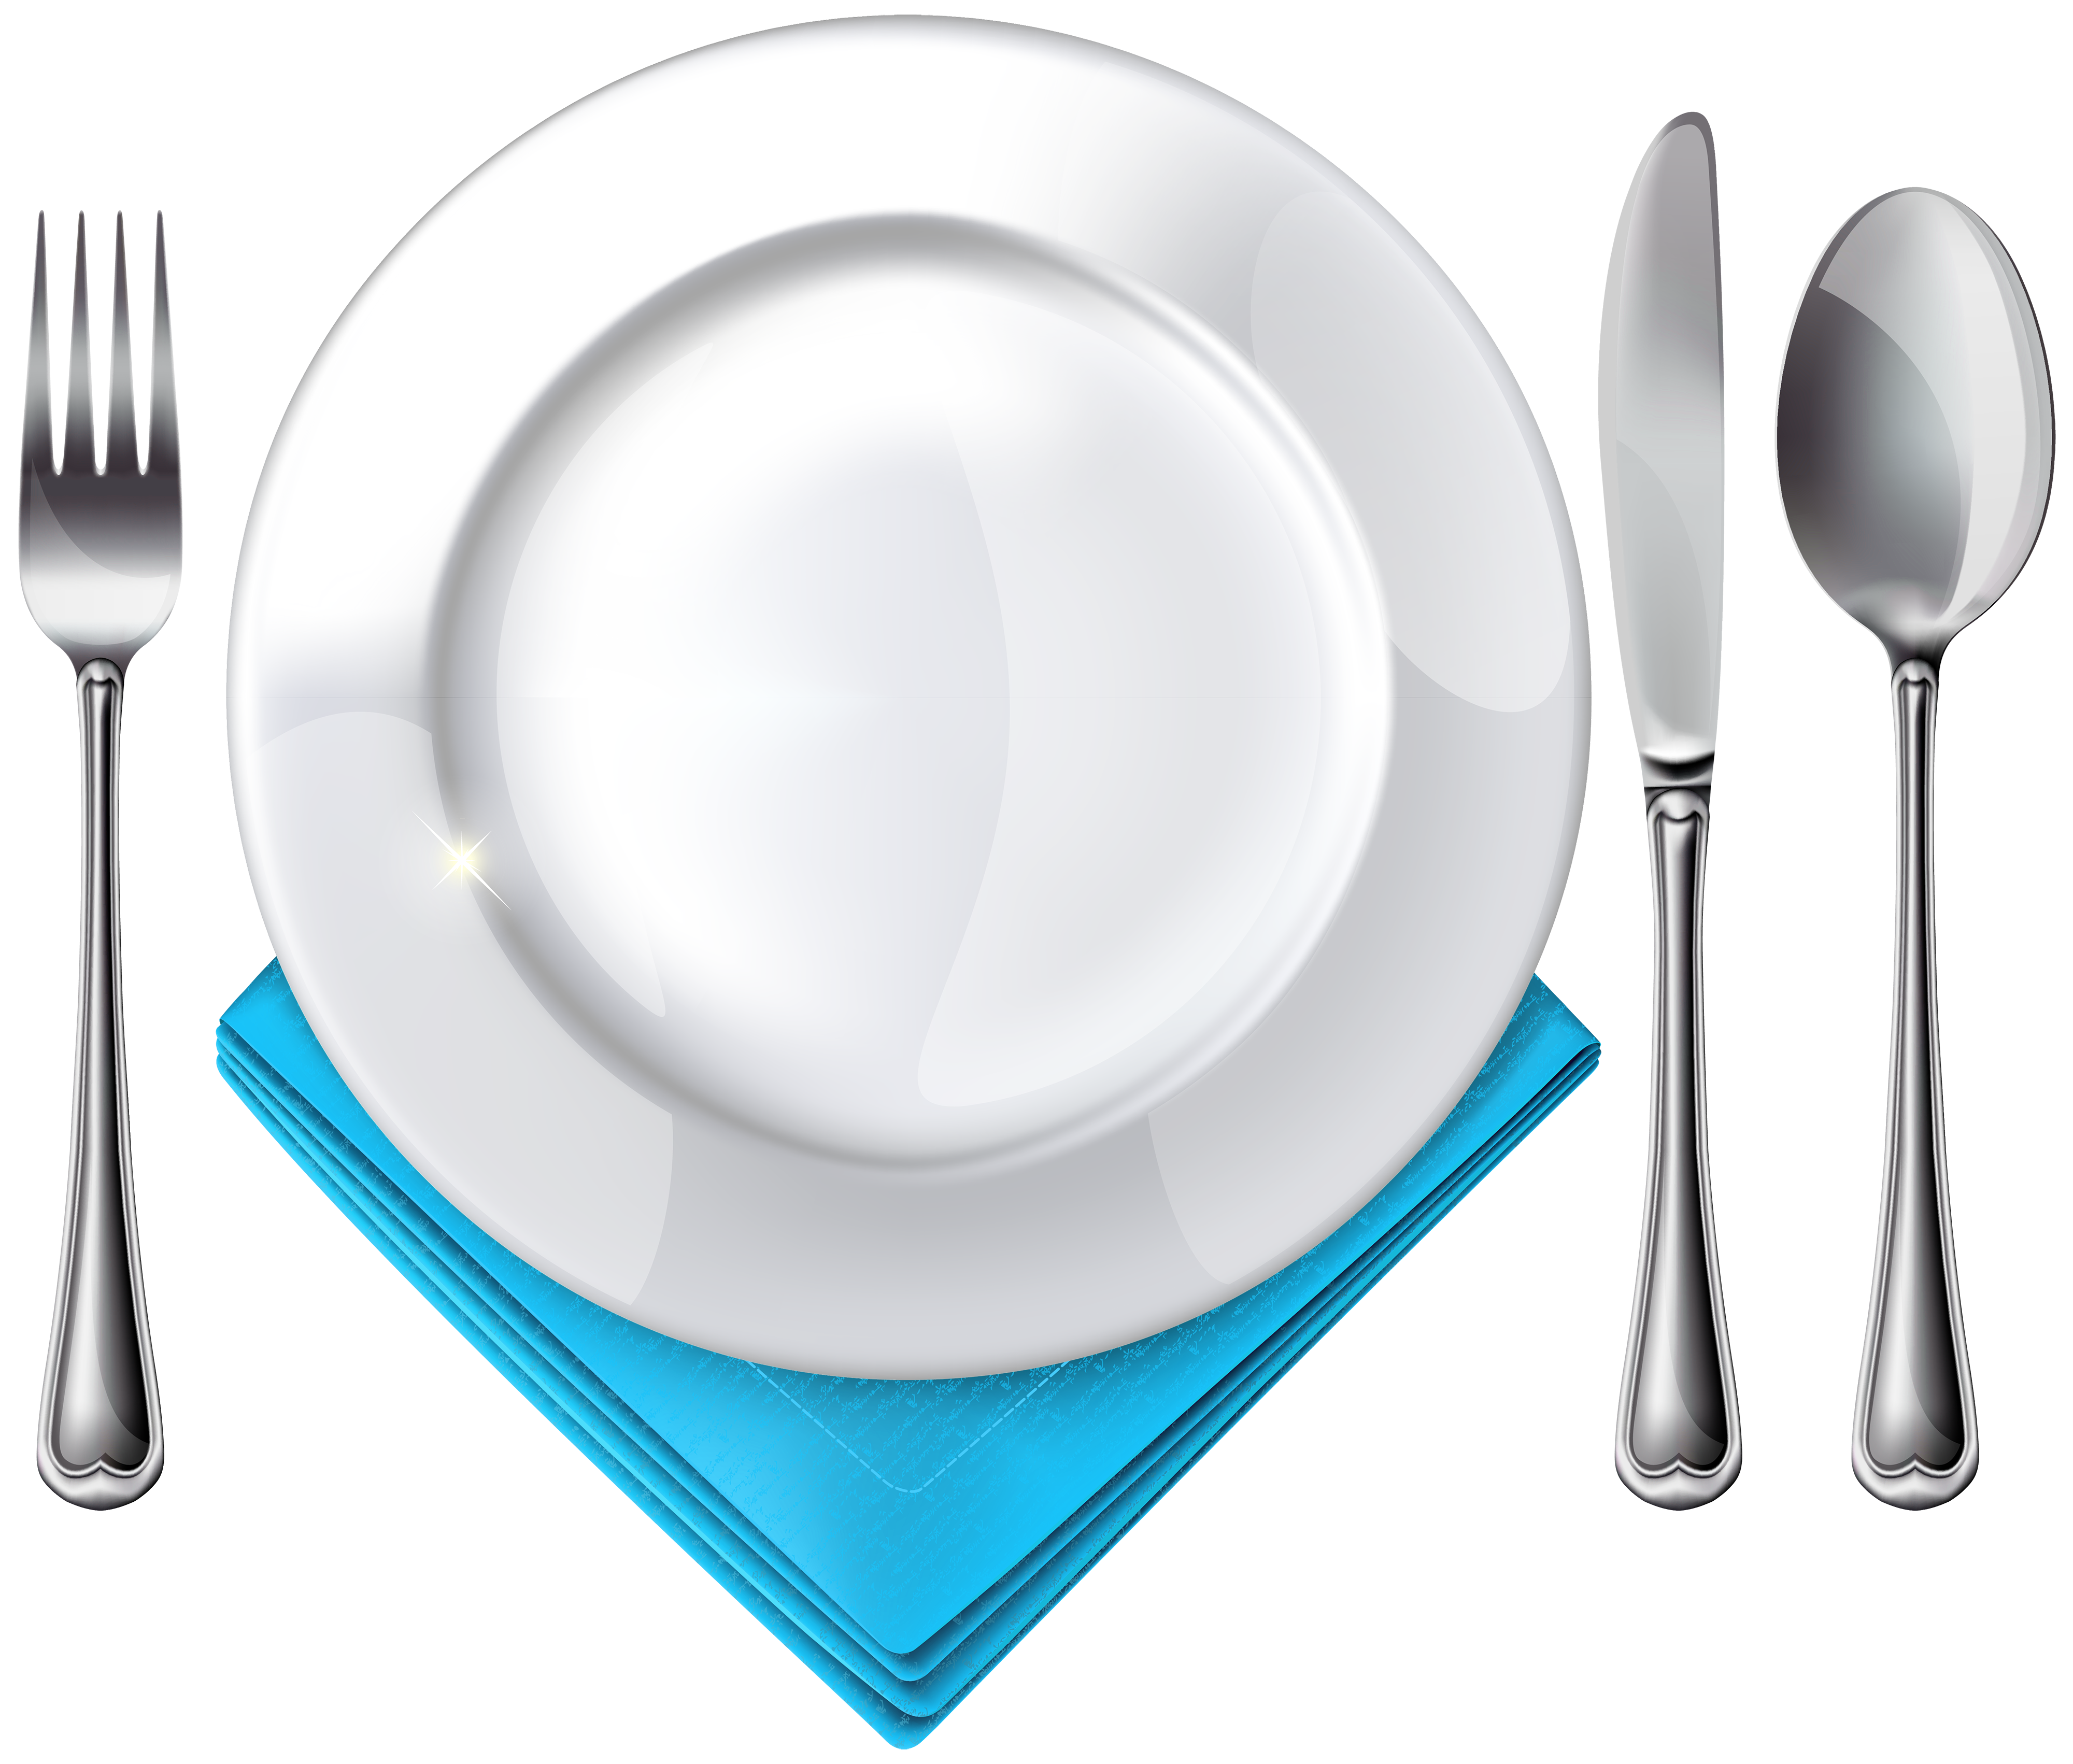 image freeuse Plate spoon knife fork. Napkin clipart